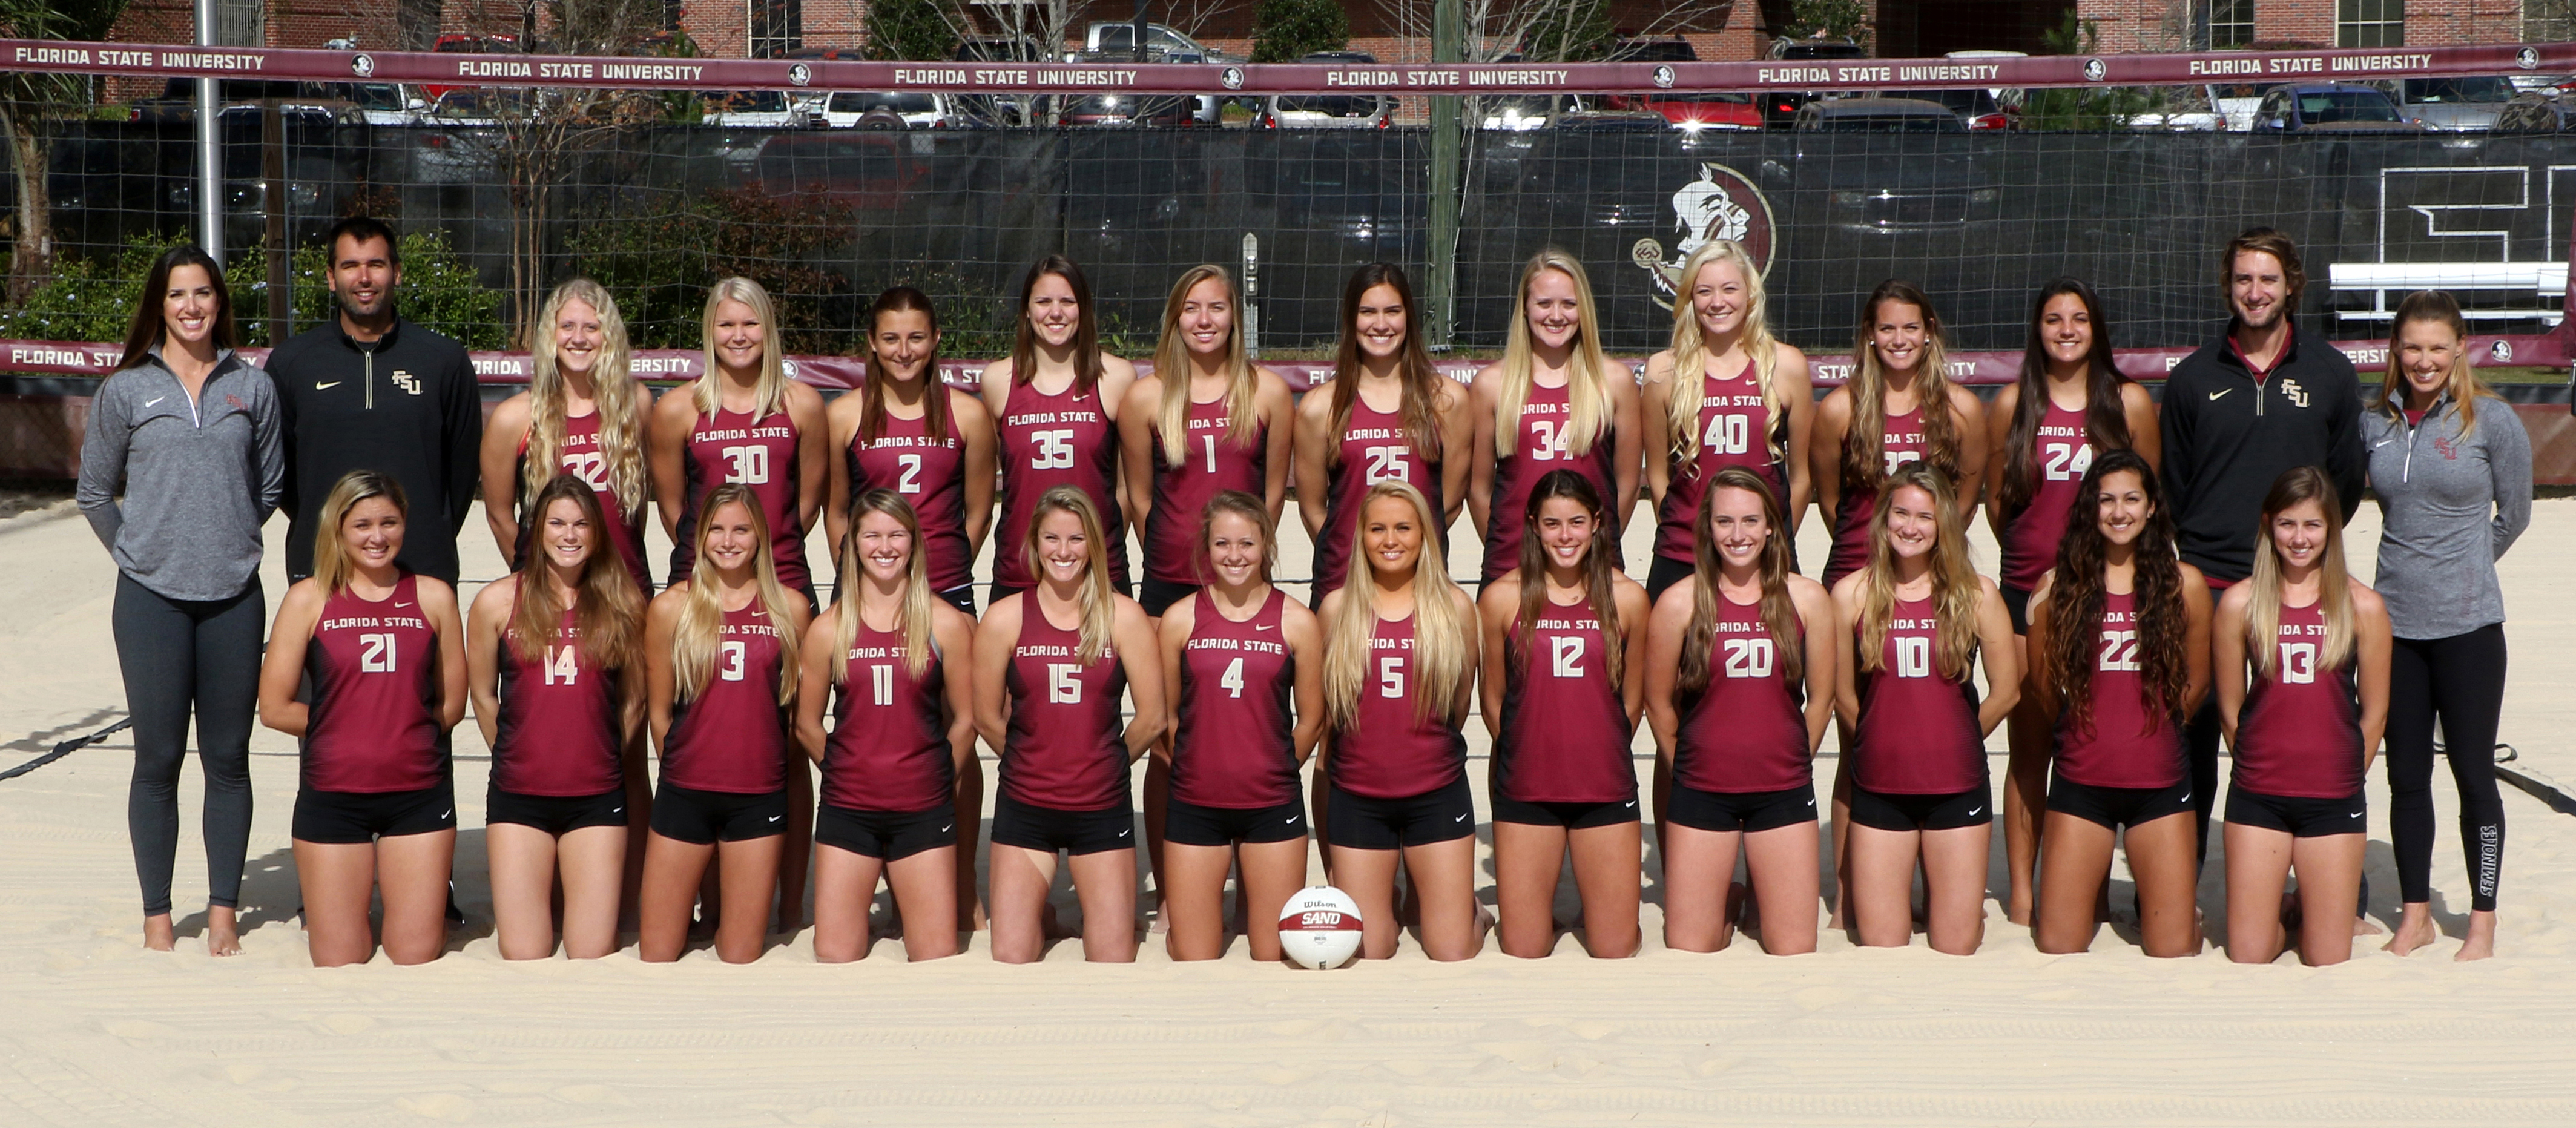 2016 Florida State Women S Beach Volleyball Team